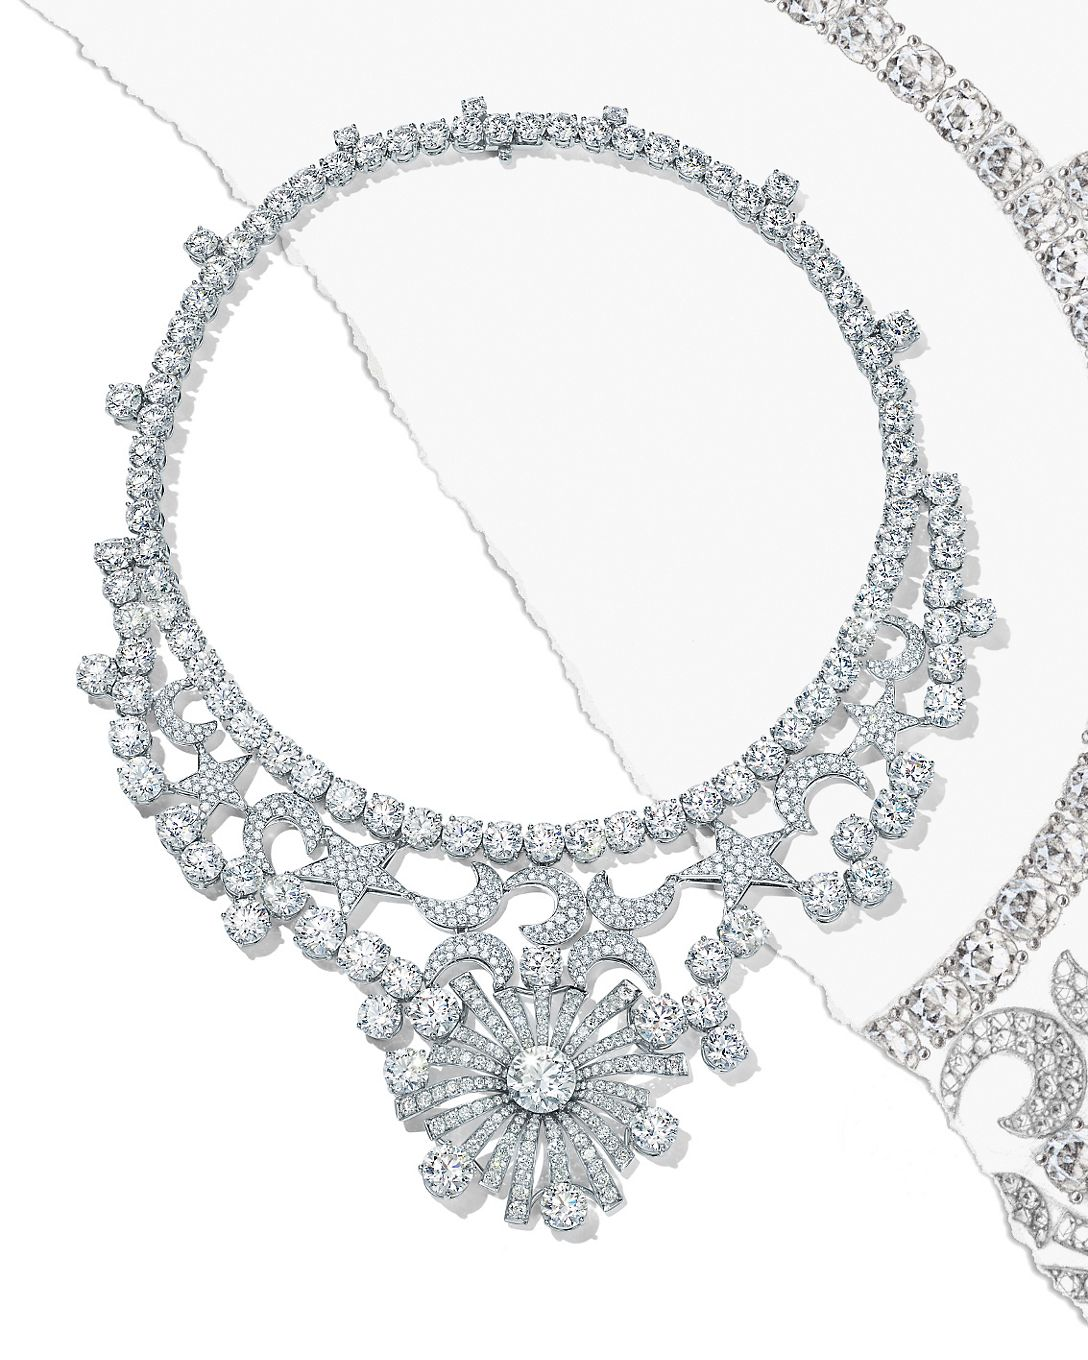 Tiffany & Co. High Jewelry Collection